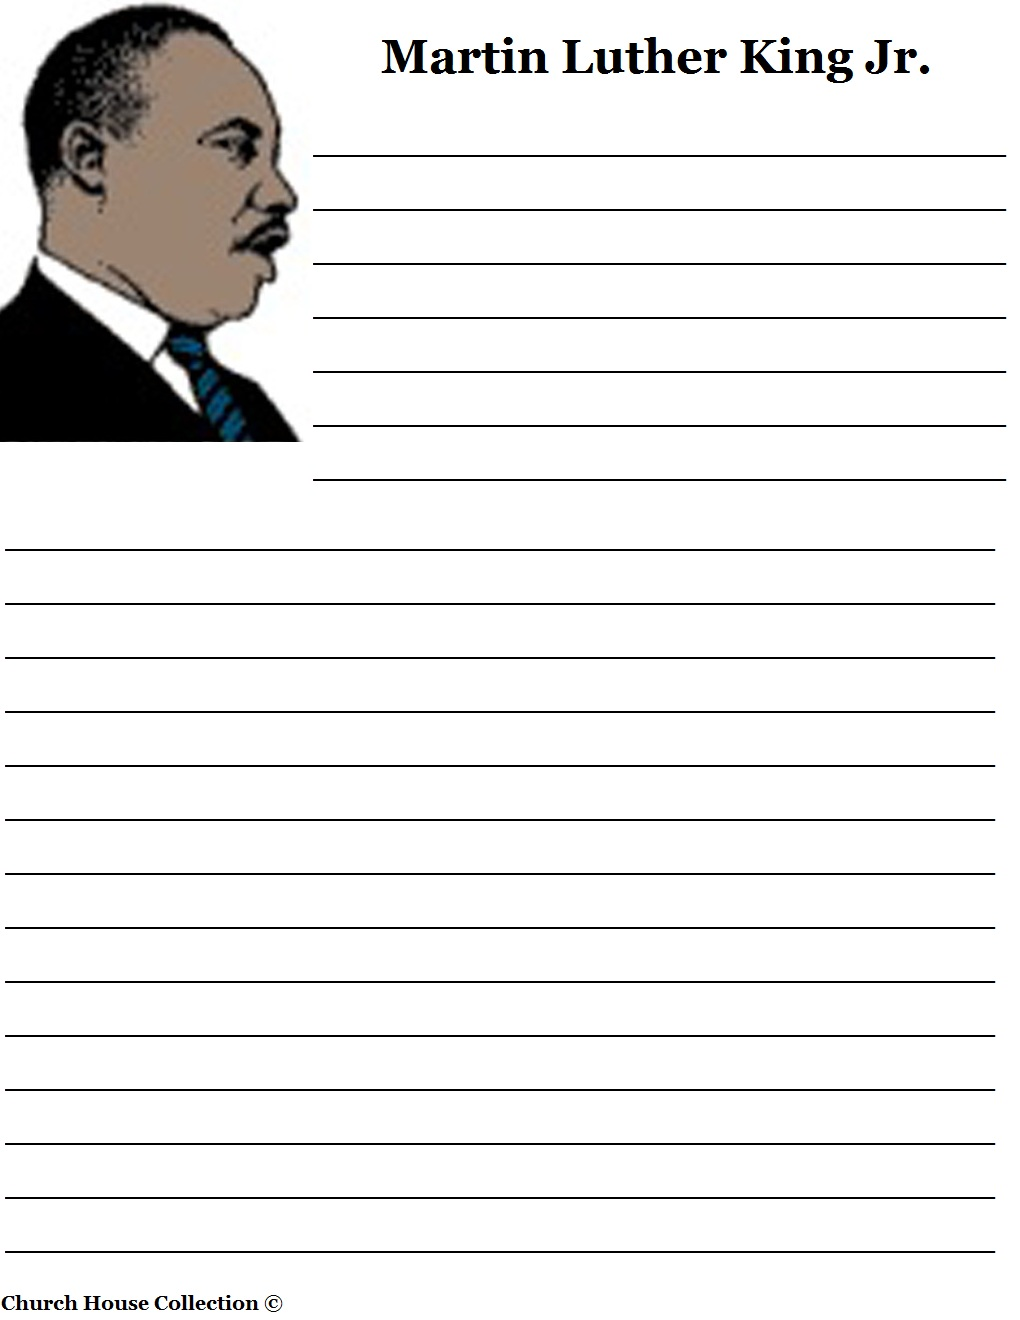 Martin luther king jr essay speech